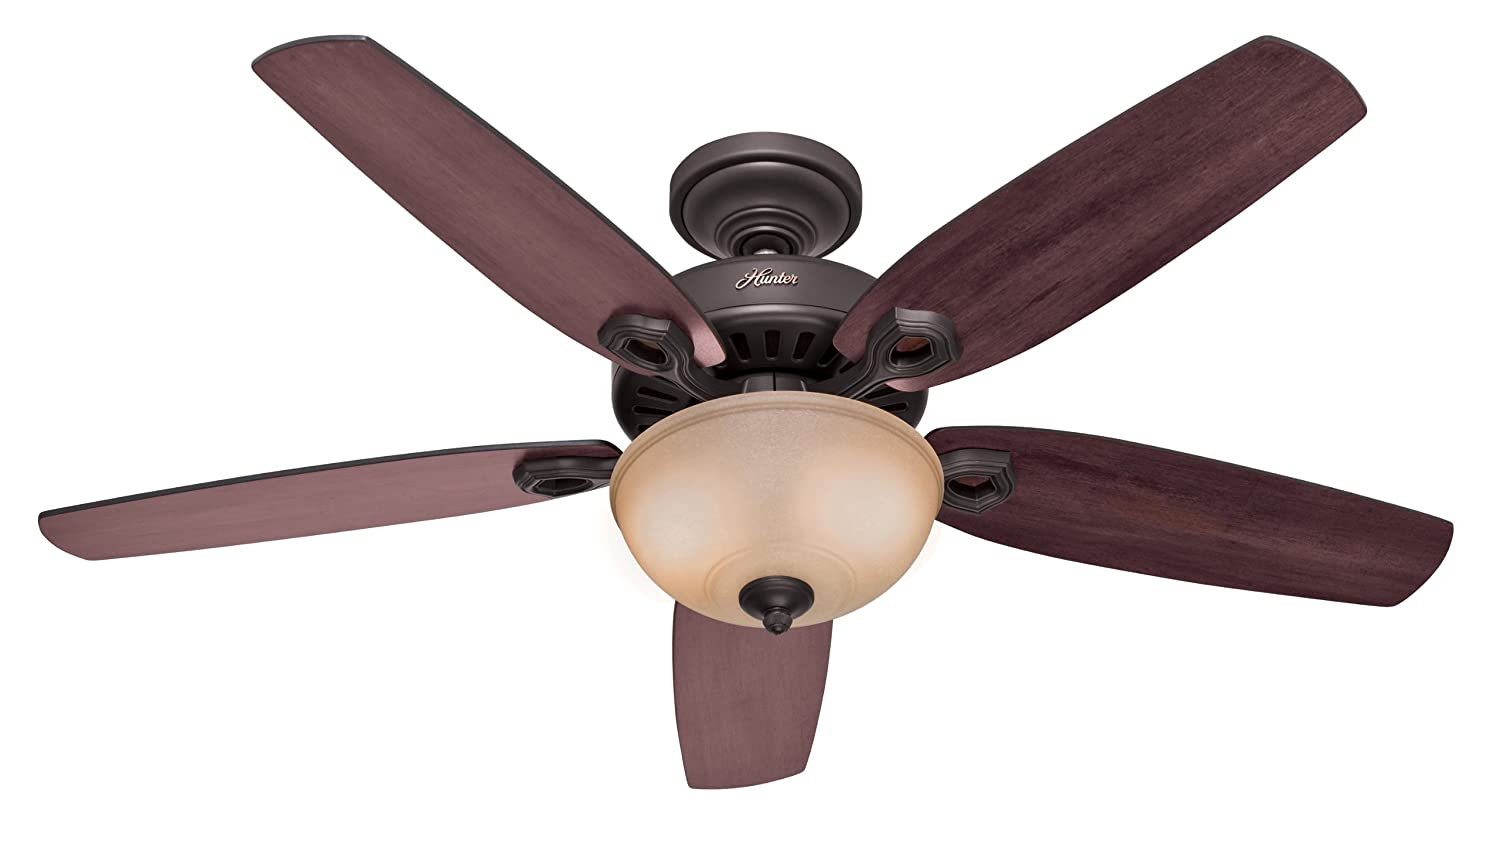 Best Ceiling Fans Reviews, Buying Guide And Comparison 2018